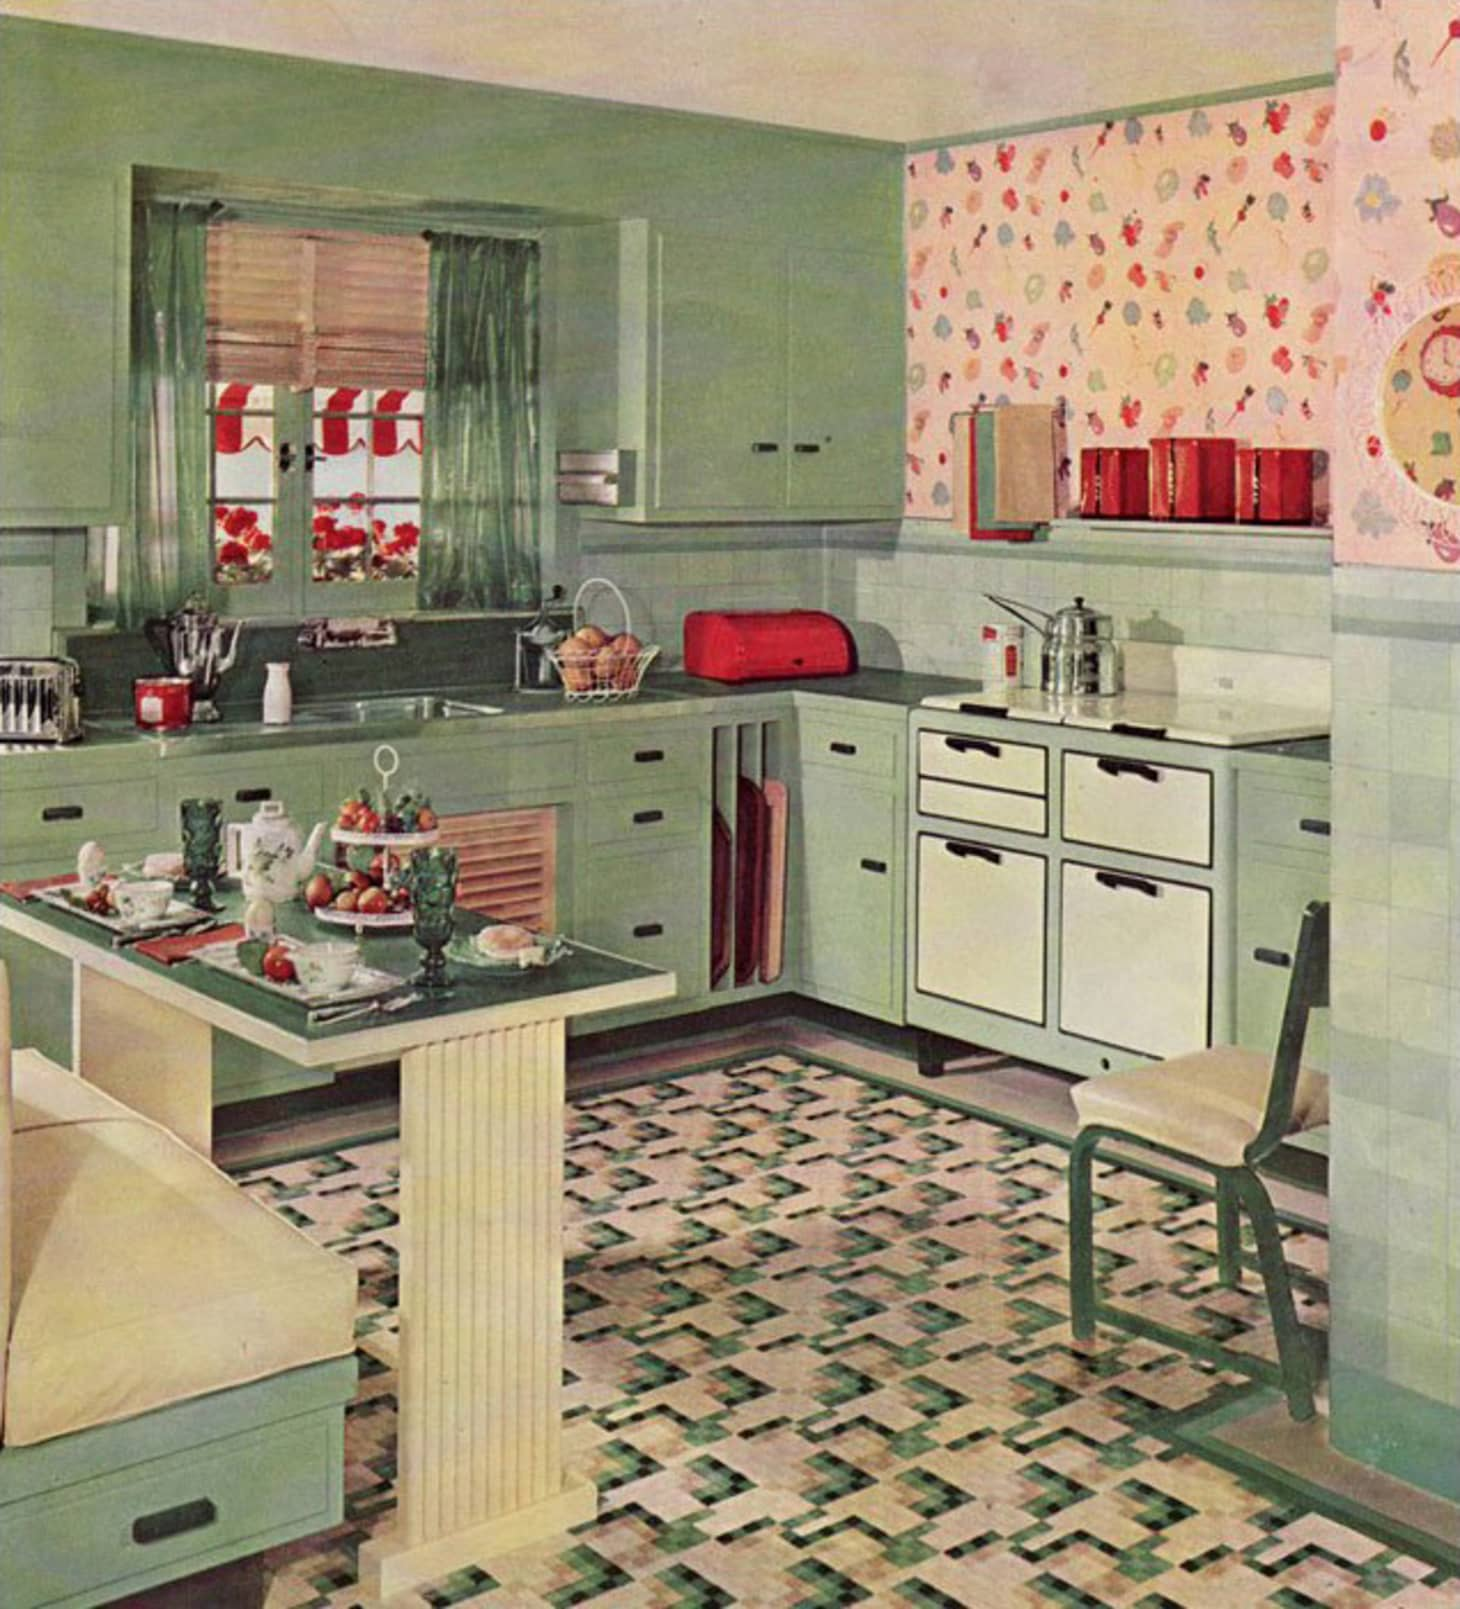 A Brief History of Kitchen Design from the 1930s to 1940s ... on 1930s bathroom design ideas, easy diy kitchen remodel ideas, black and white dining room ideas, colonial kitchen design ideas, old kitchen decorating ideas, vintage kitchen ideas, old home kitchen ideas, black and red kitchen ideas, 1930s interior design ideas, 1950s retro kitchen ideas, art deco kitchen ideas,